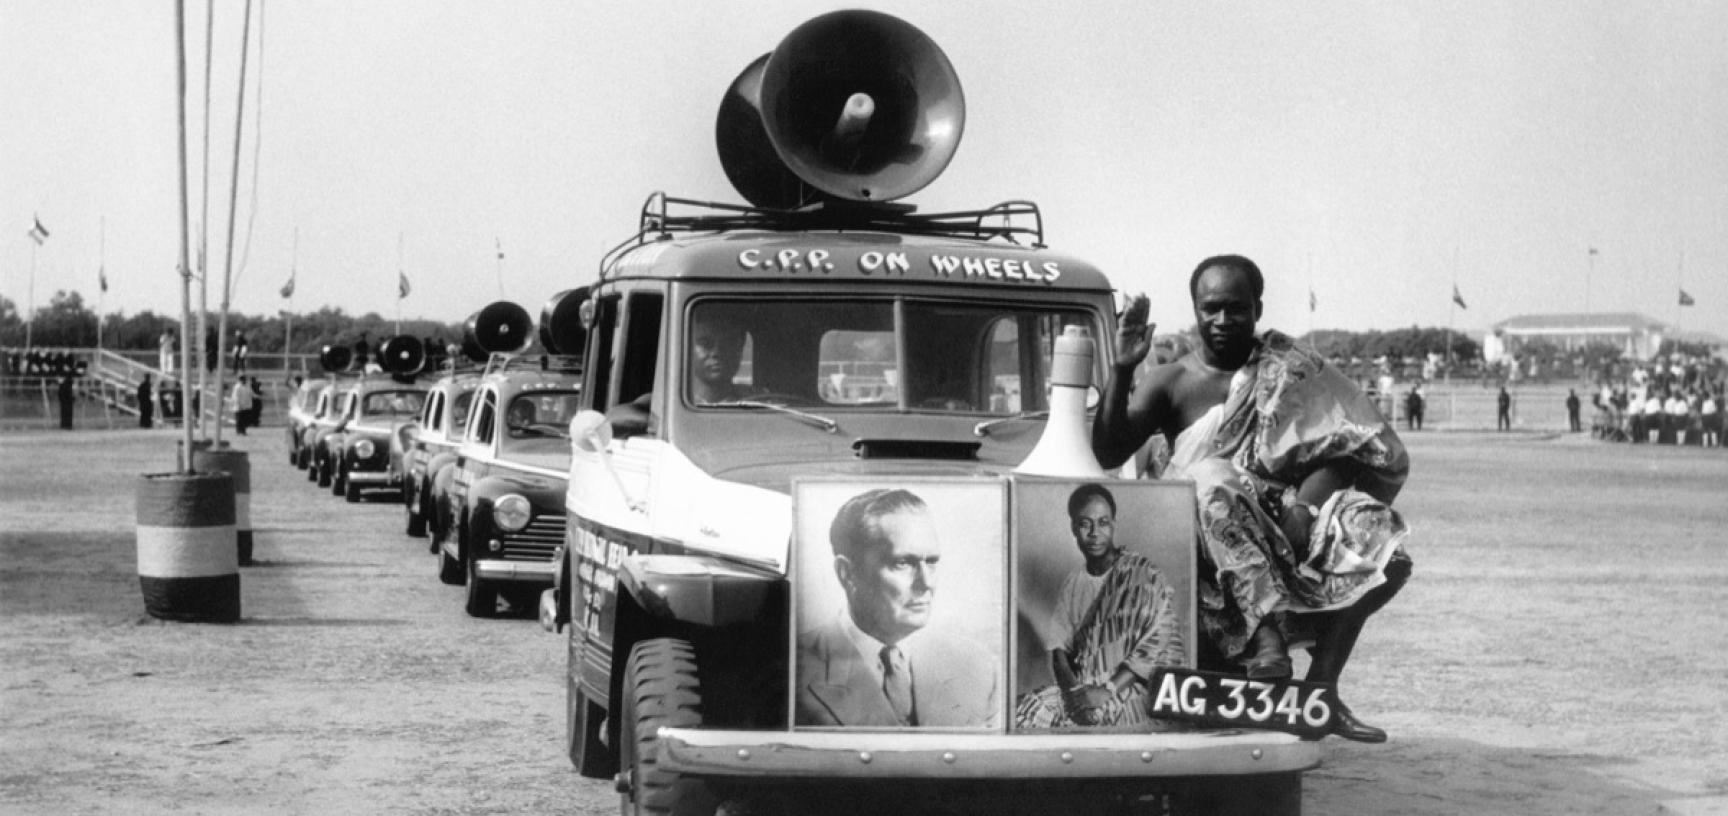 Ghana, 1961. The parade of social organizations in Accra, held in honour of President Tito. (Copyright Museum of Yugoslavia, Belgrade)